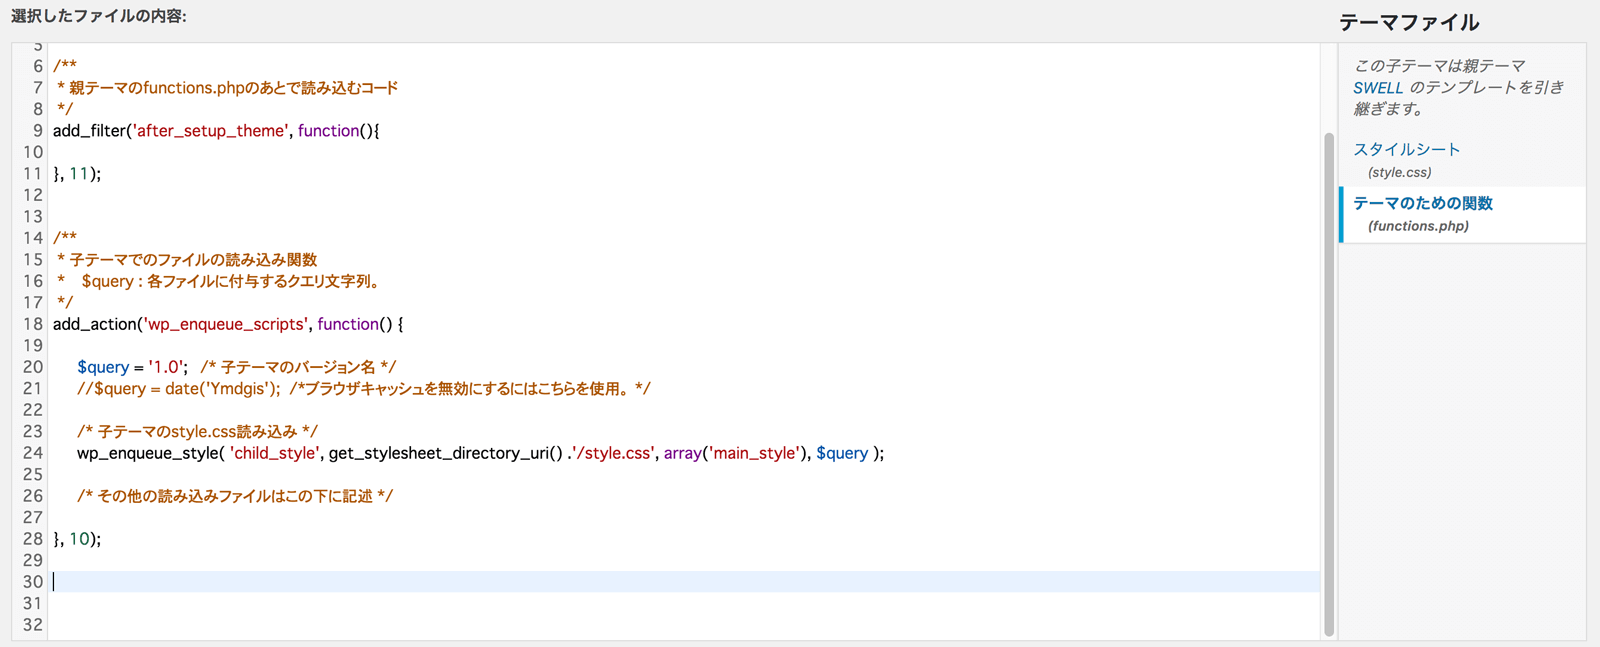 functions.php編集位置